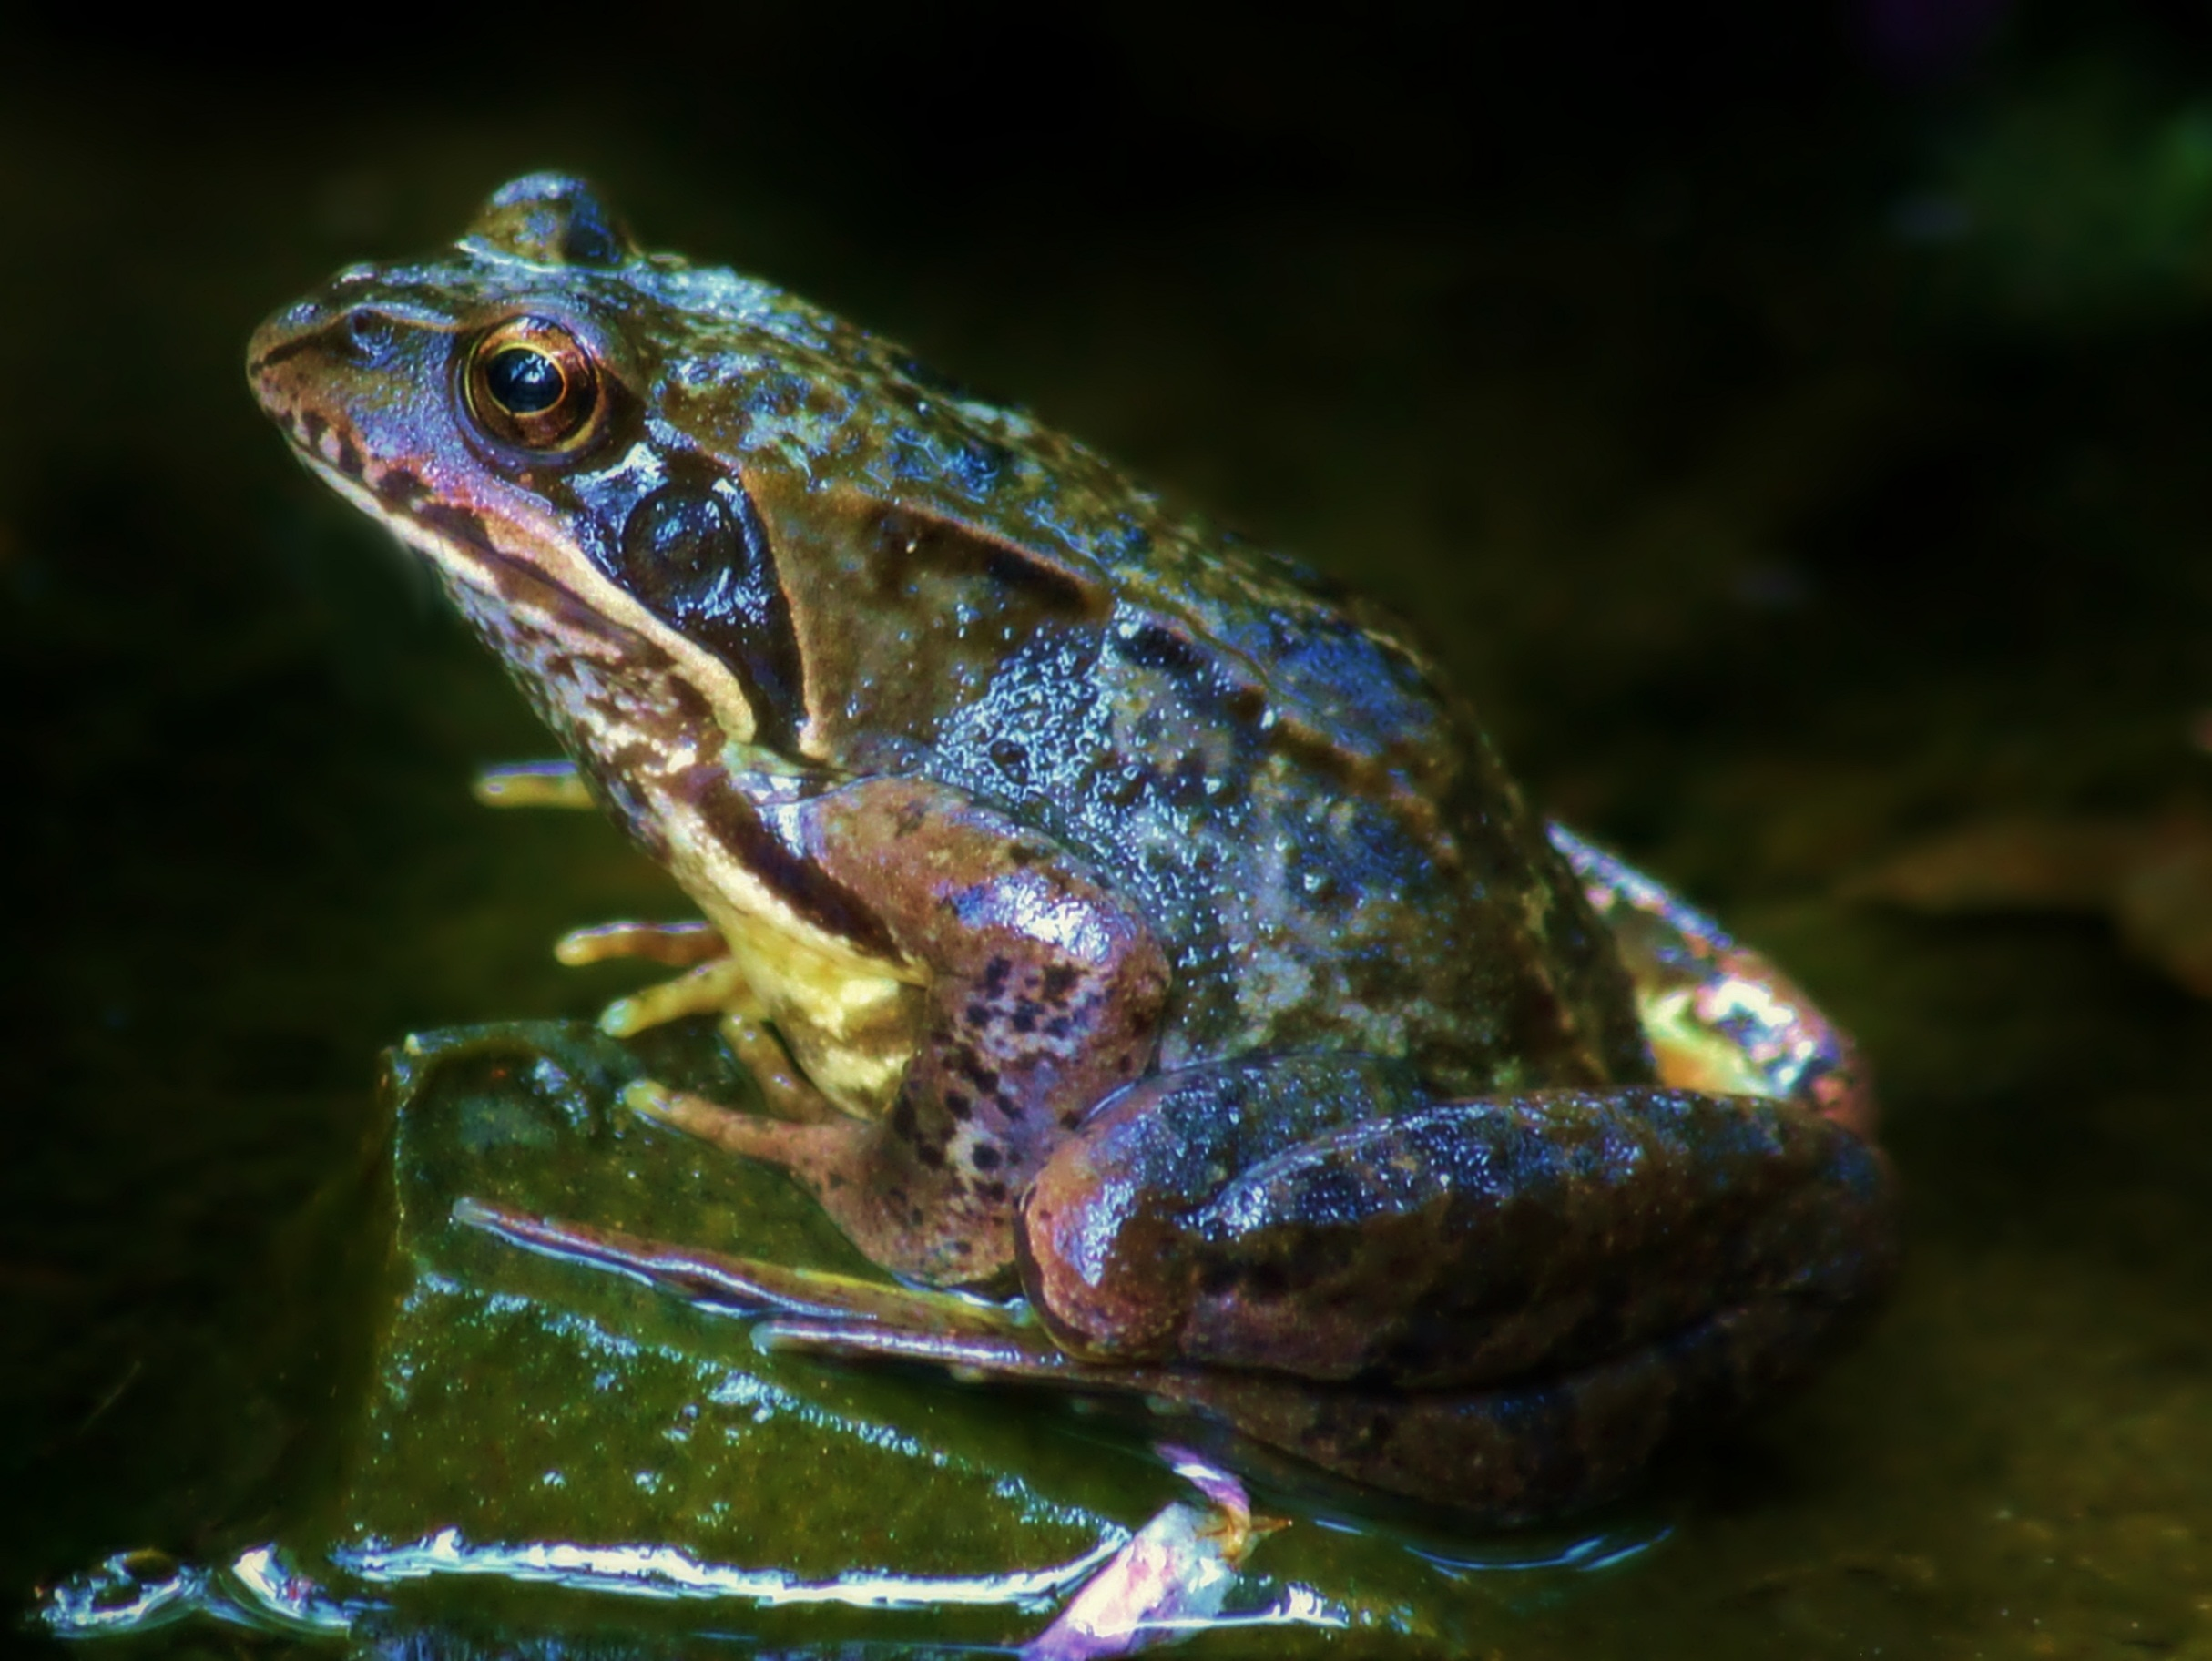 Frog, Animal, Nature, HQ Photo